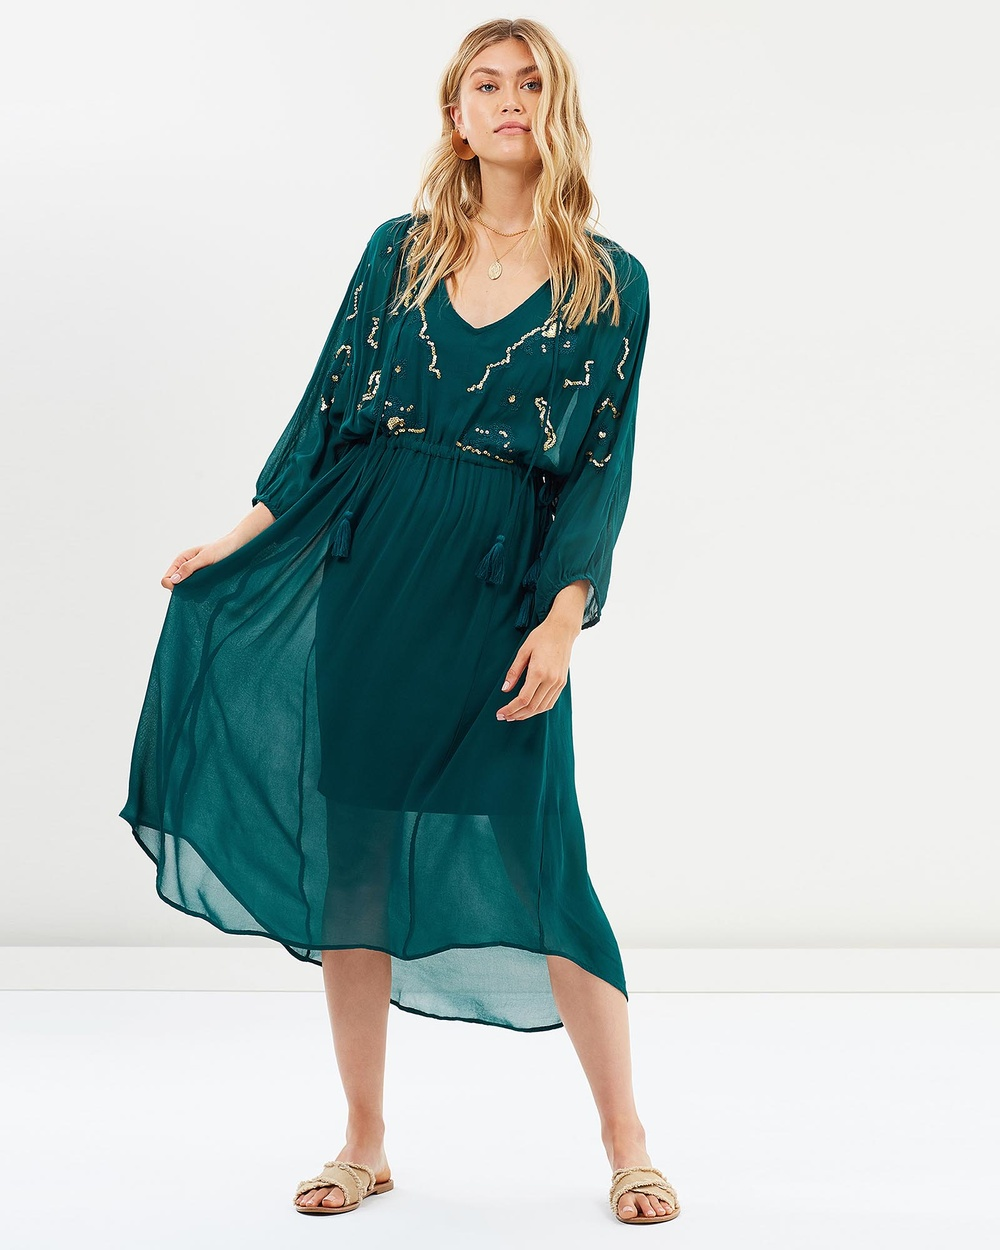 Gysette Teal Pia Dress